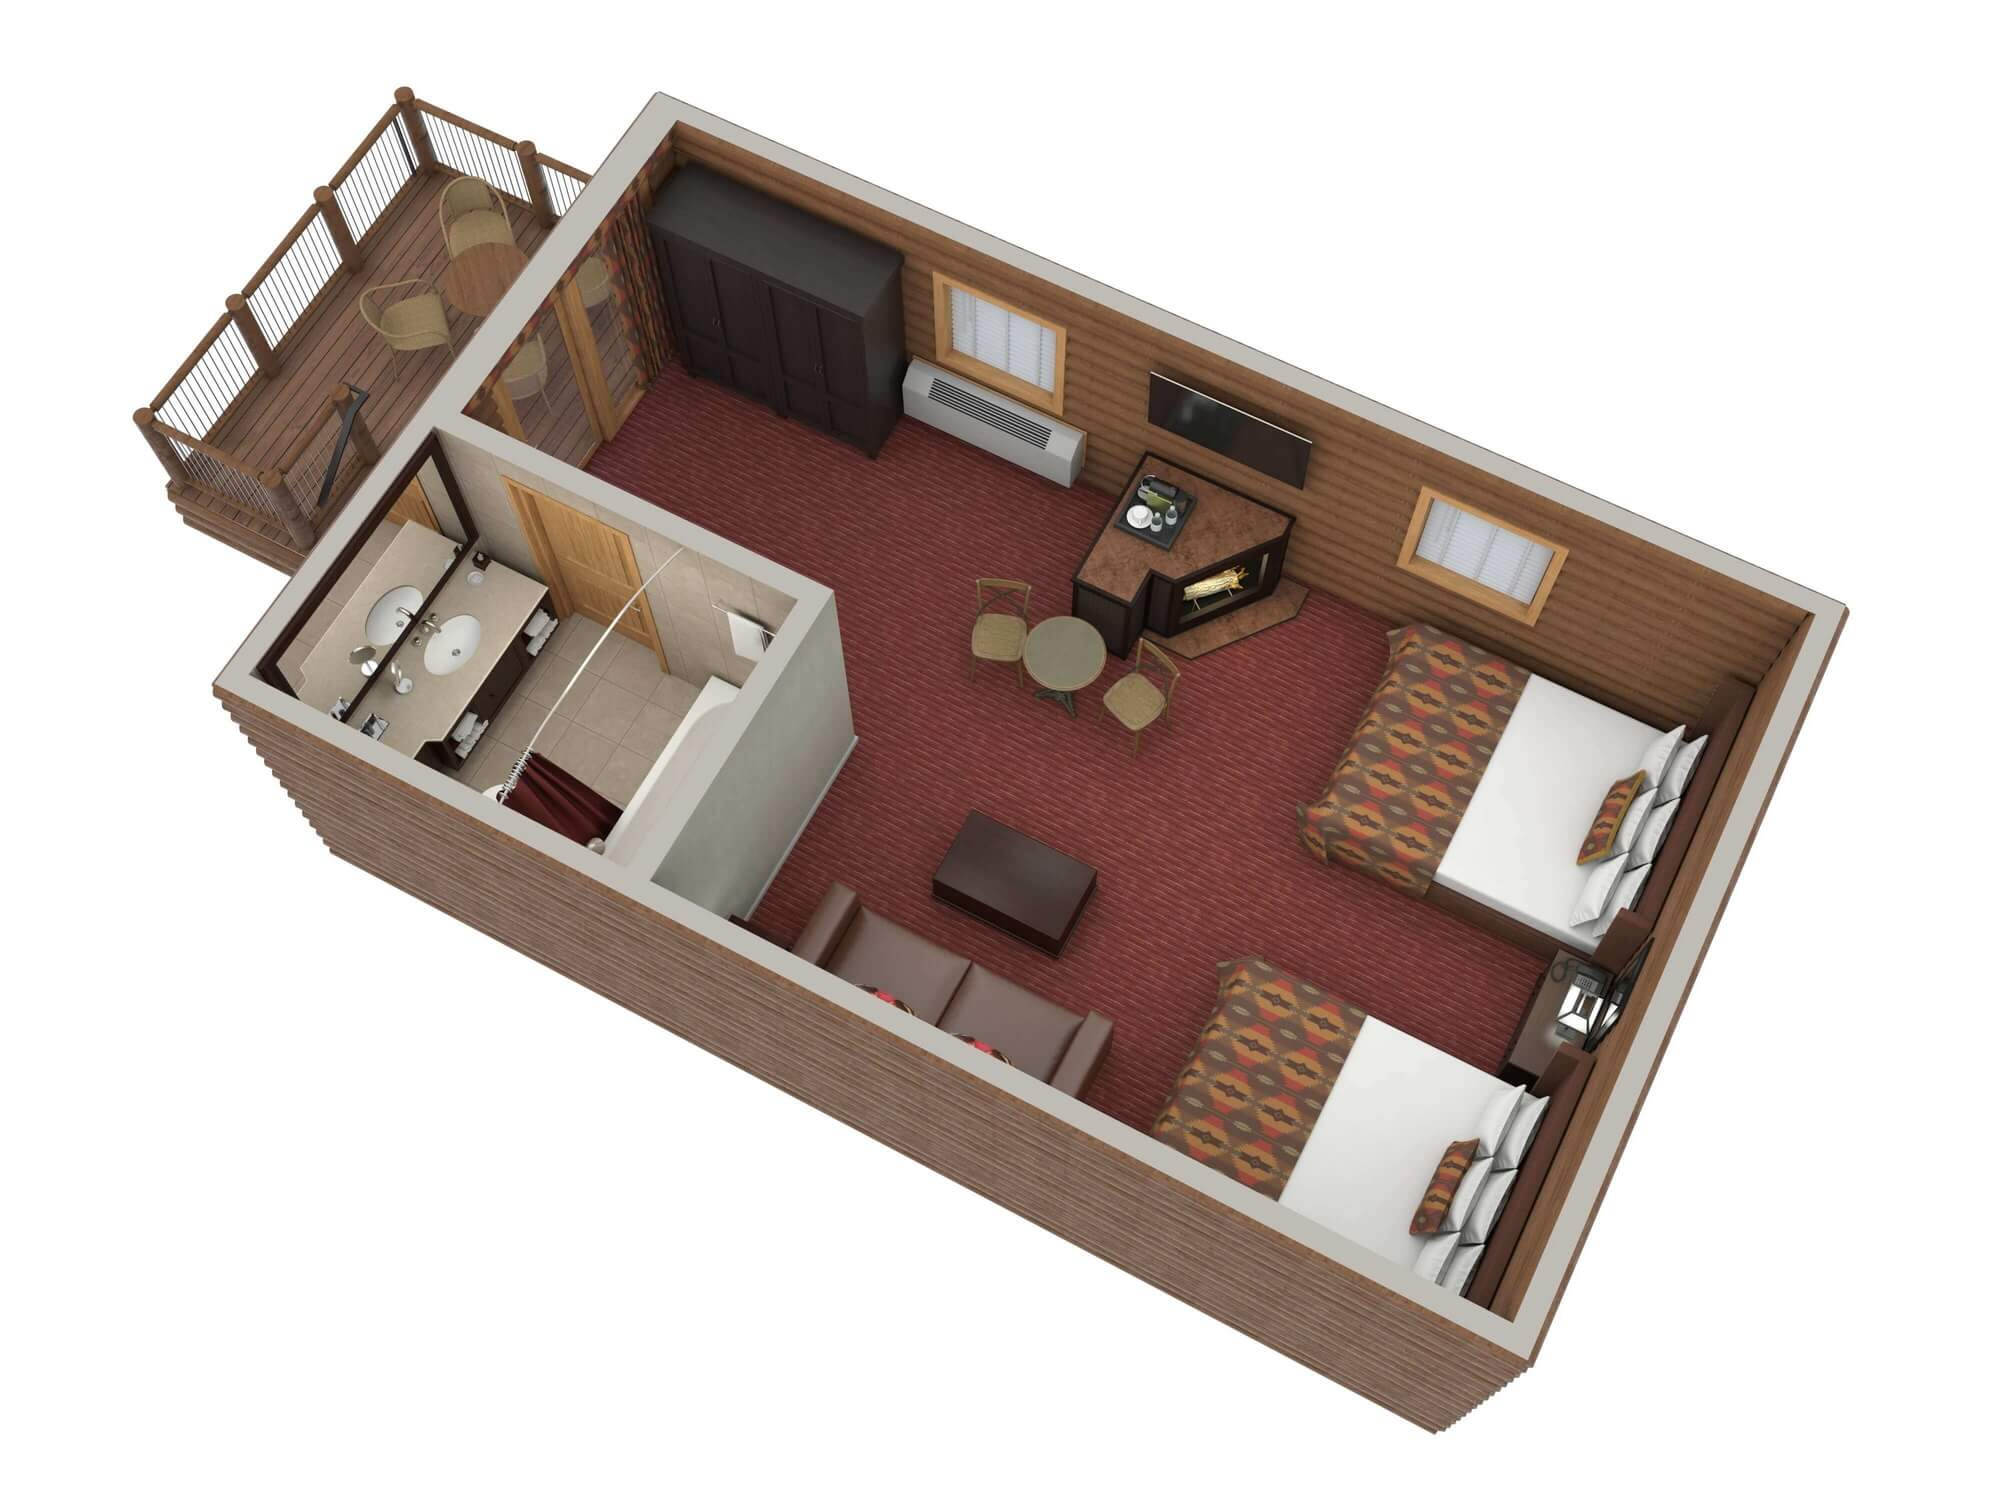 digital image of top down view of luxury cabin with two queen beds and fireplace